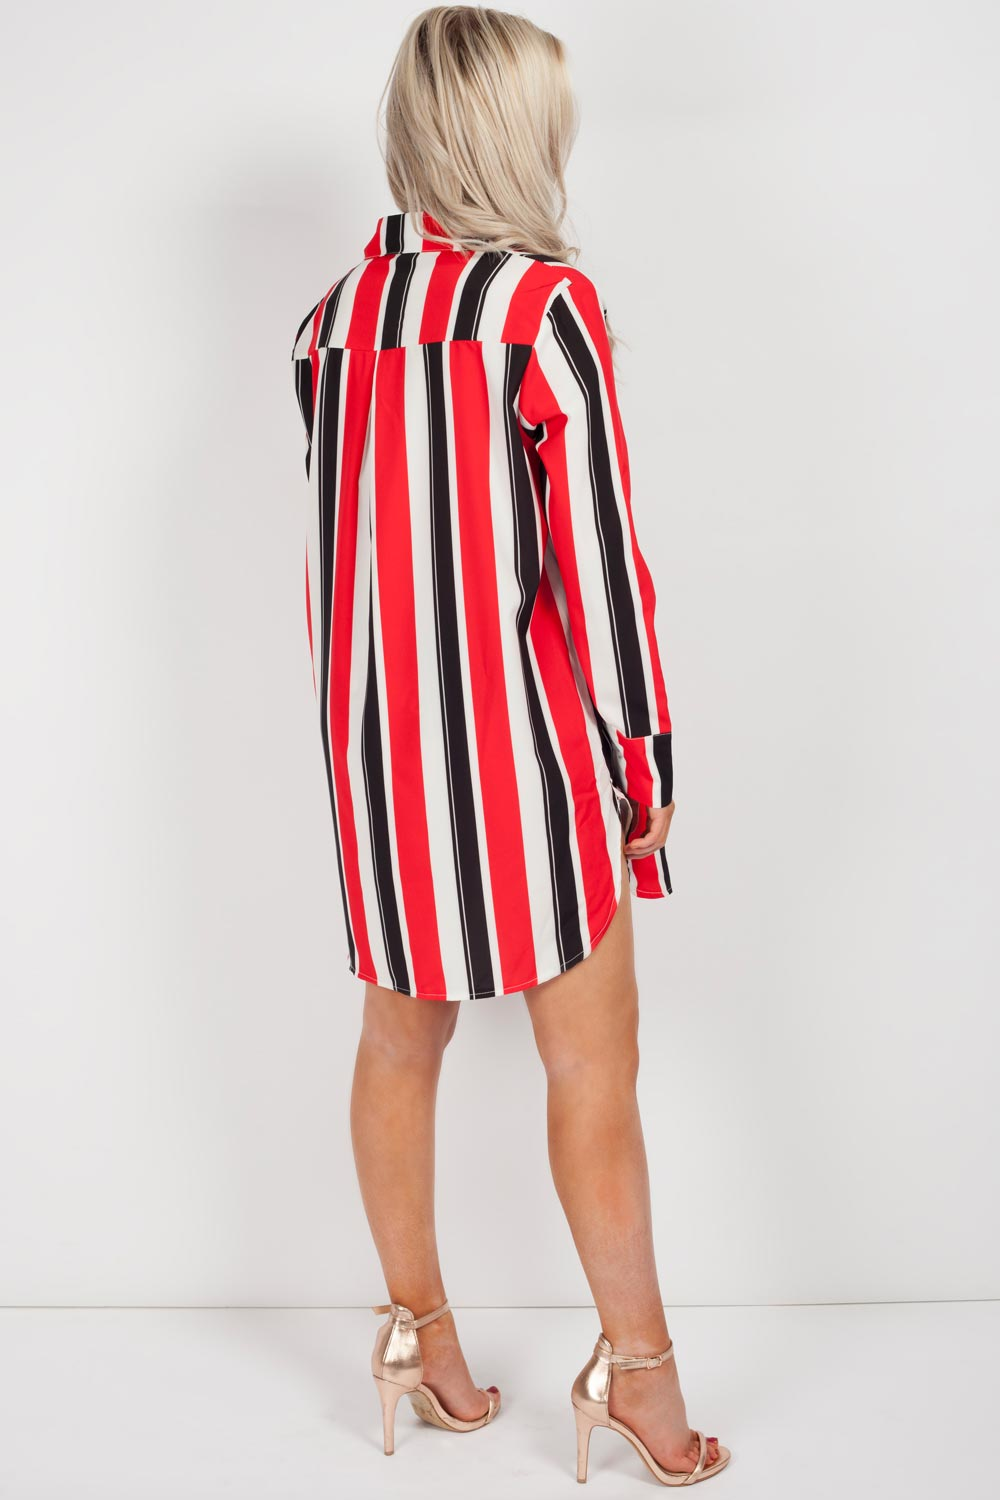 red and white stripe shirt dress womens